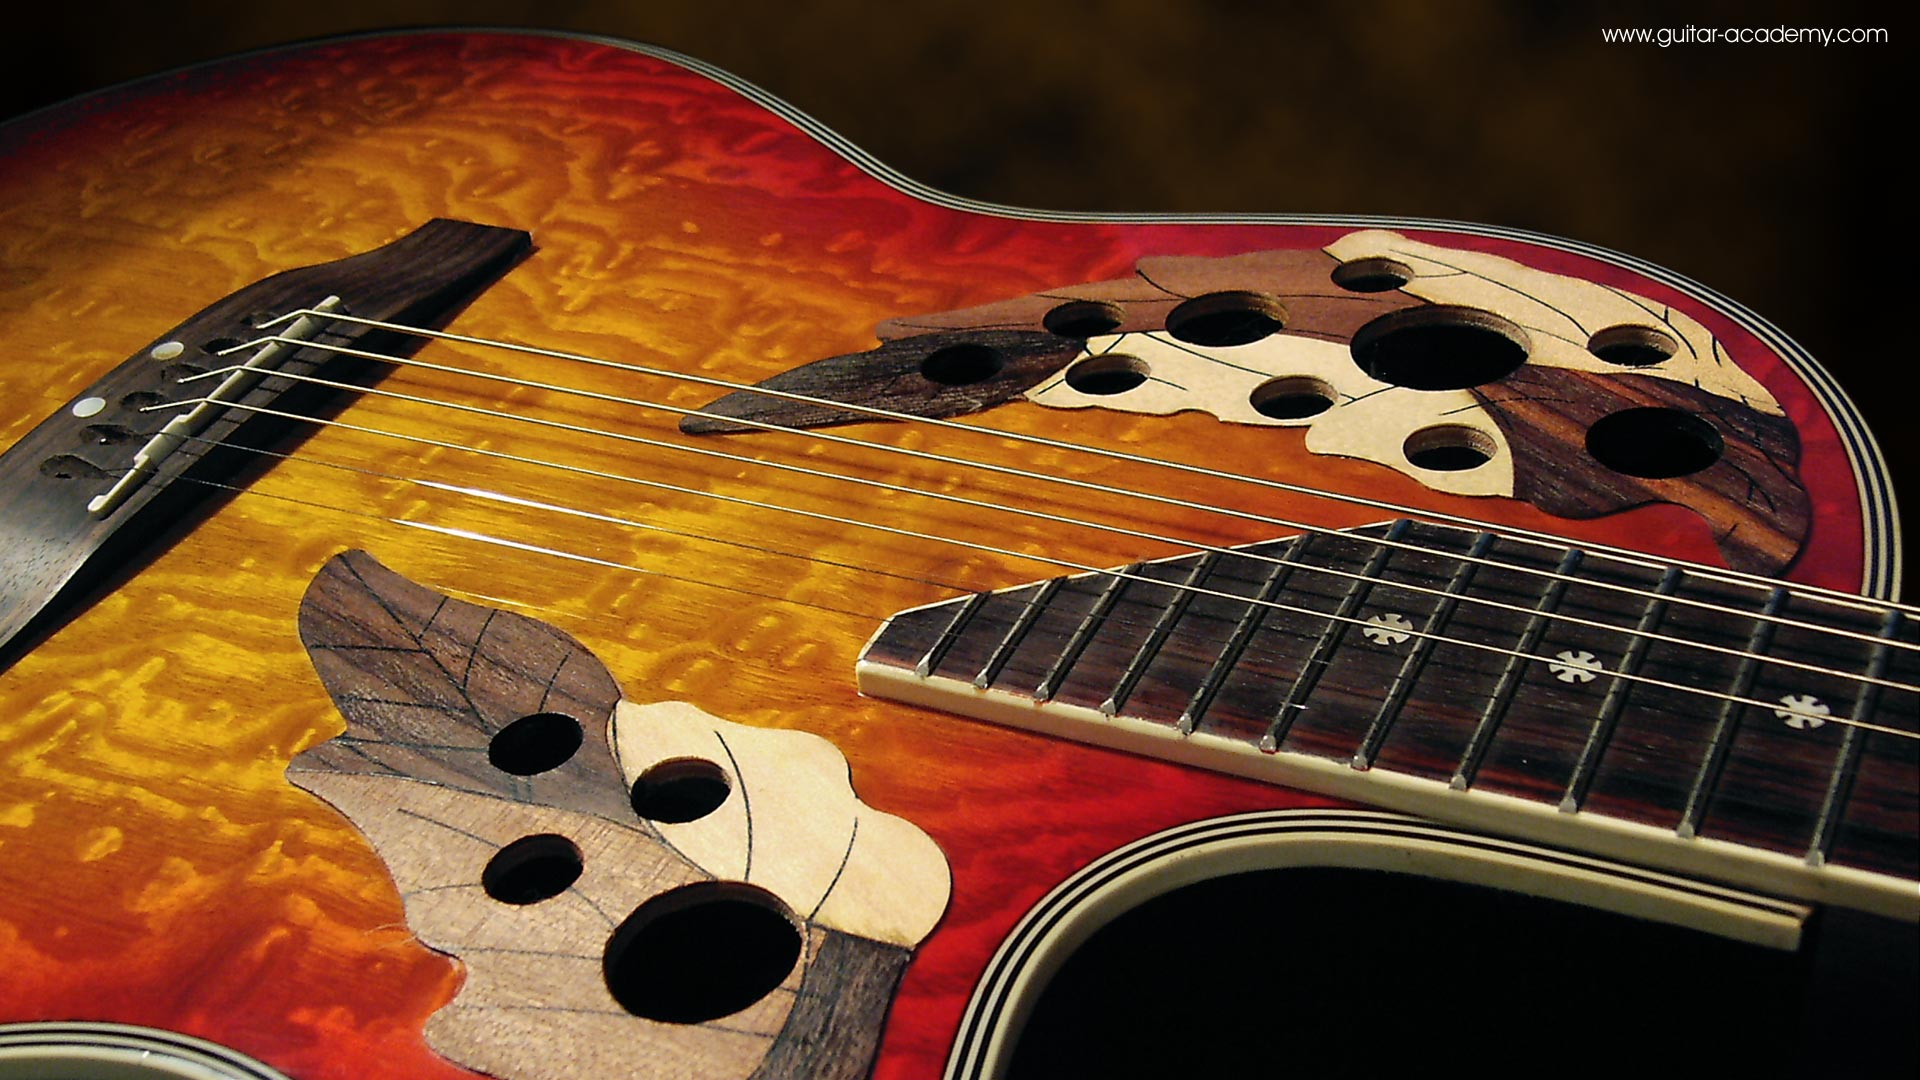 Acoustic Guitar Wallpapers Hd Full - Ovation Guitar 壁紙 , HD Wallpaper & Backgrounds